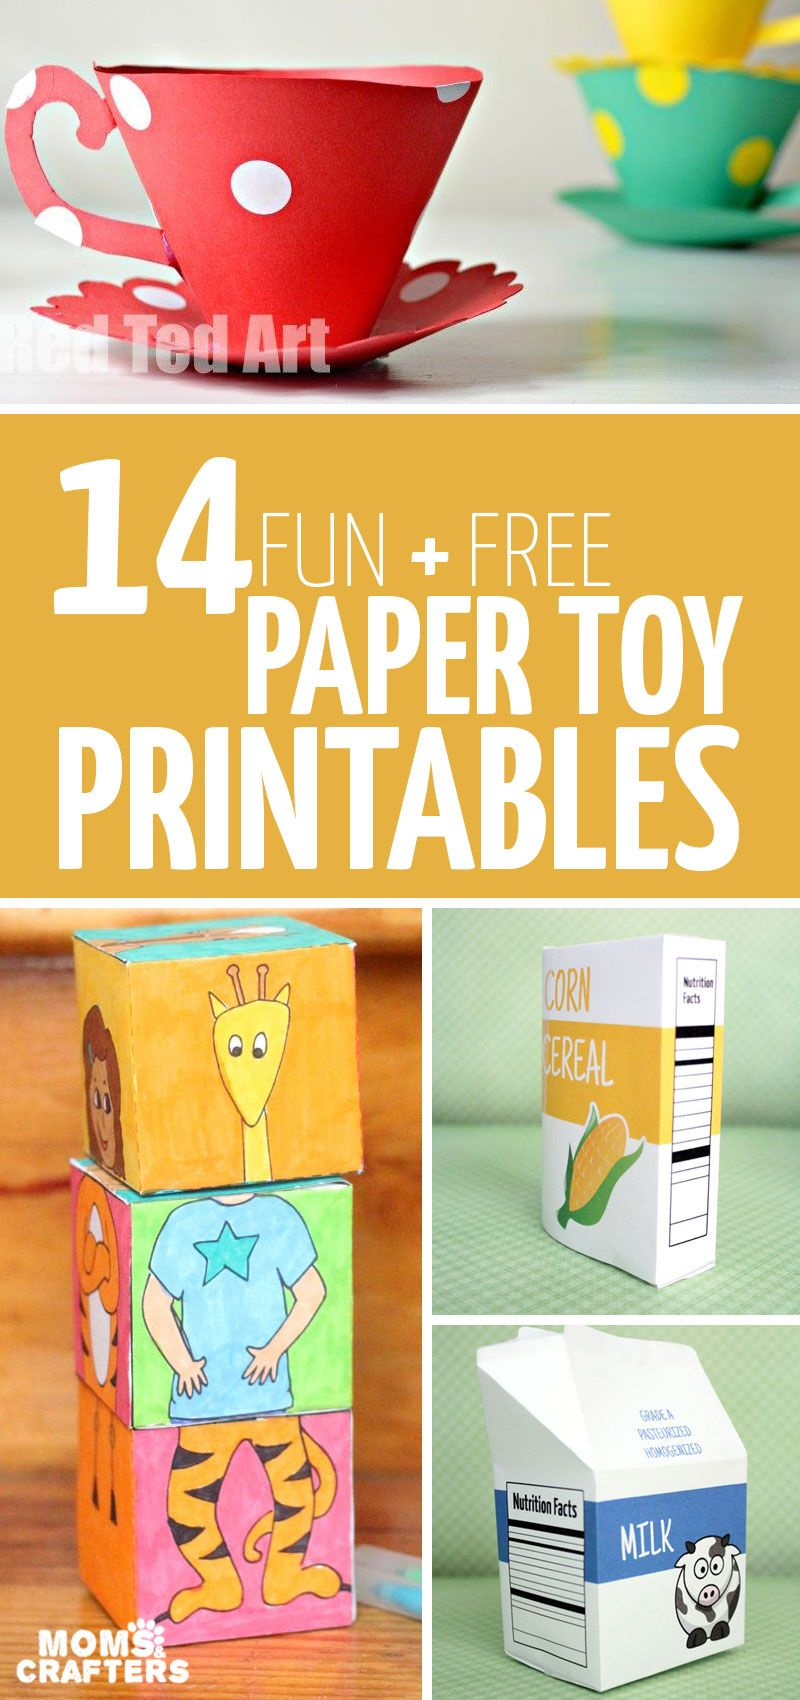 Paper Toy Templates - 14 Free Printables to Craft and Play